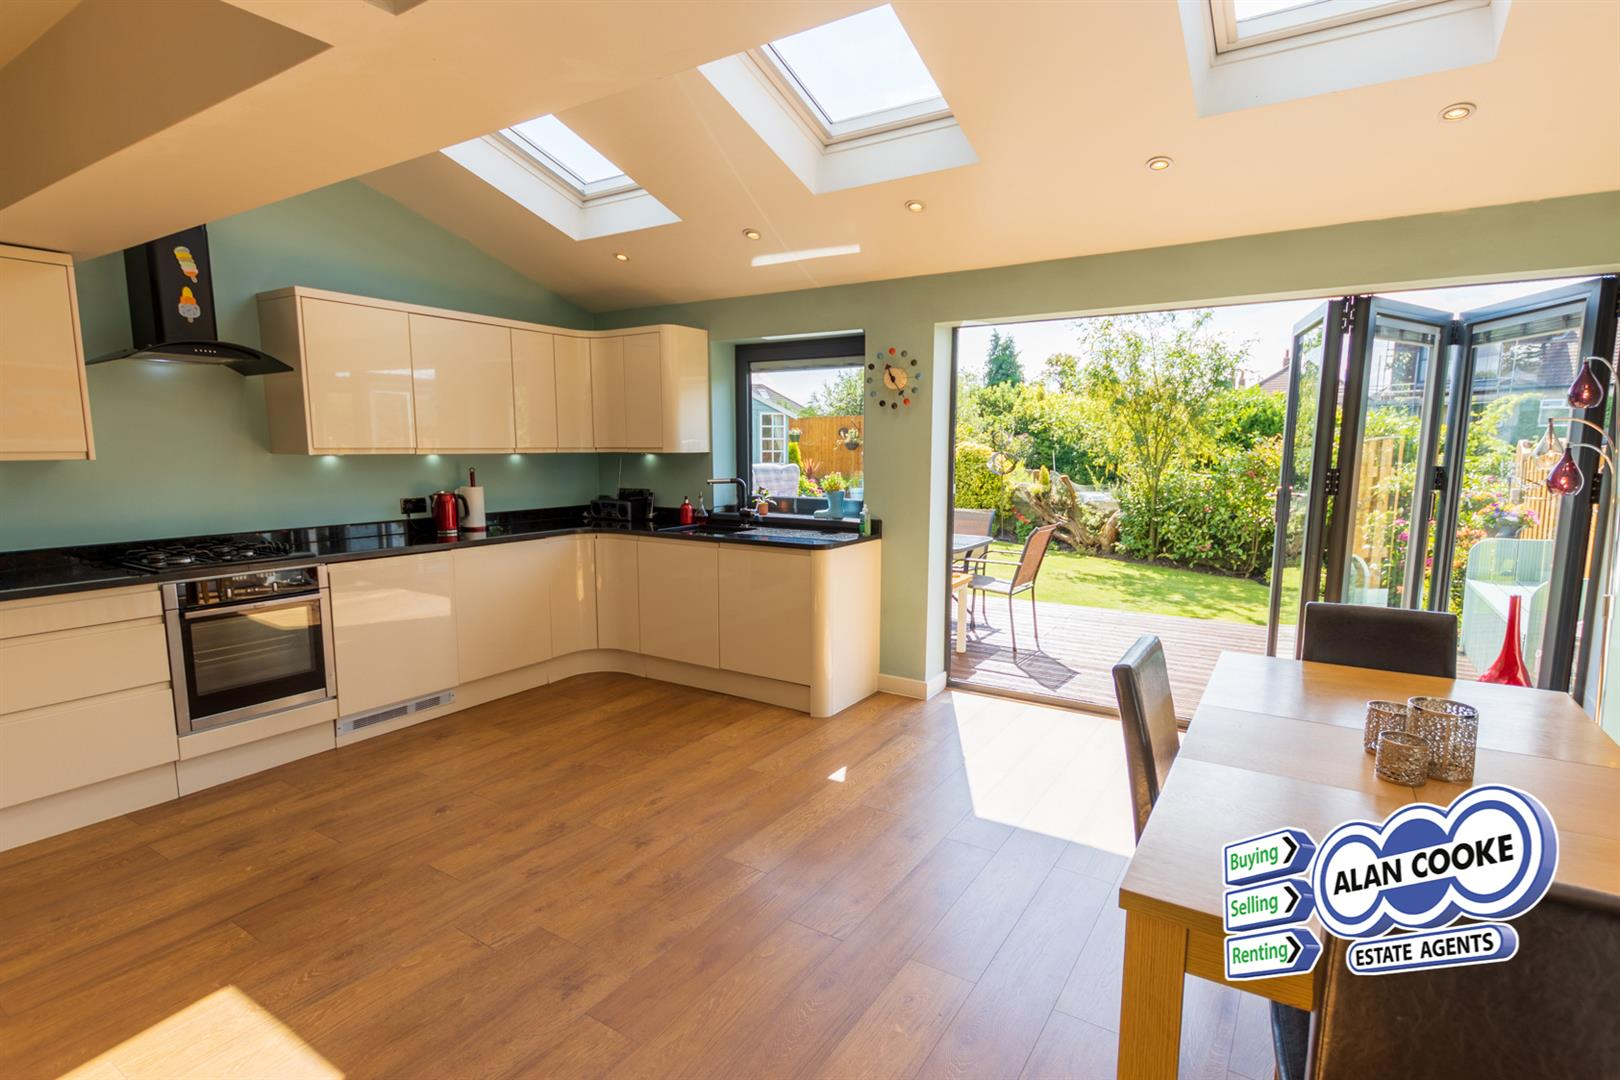 EXTENDED OPEN PLAN KITCHEN & DINING ROOM